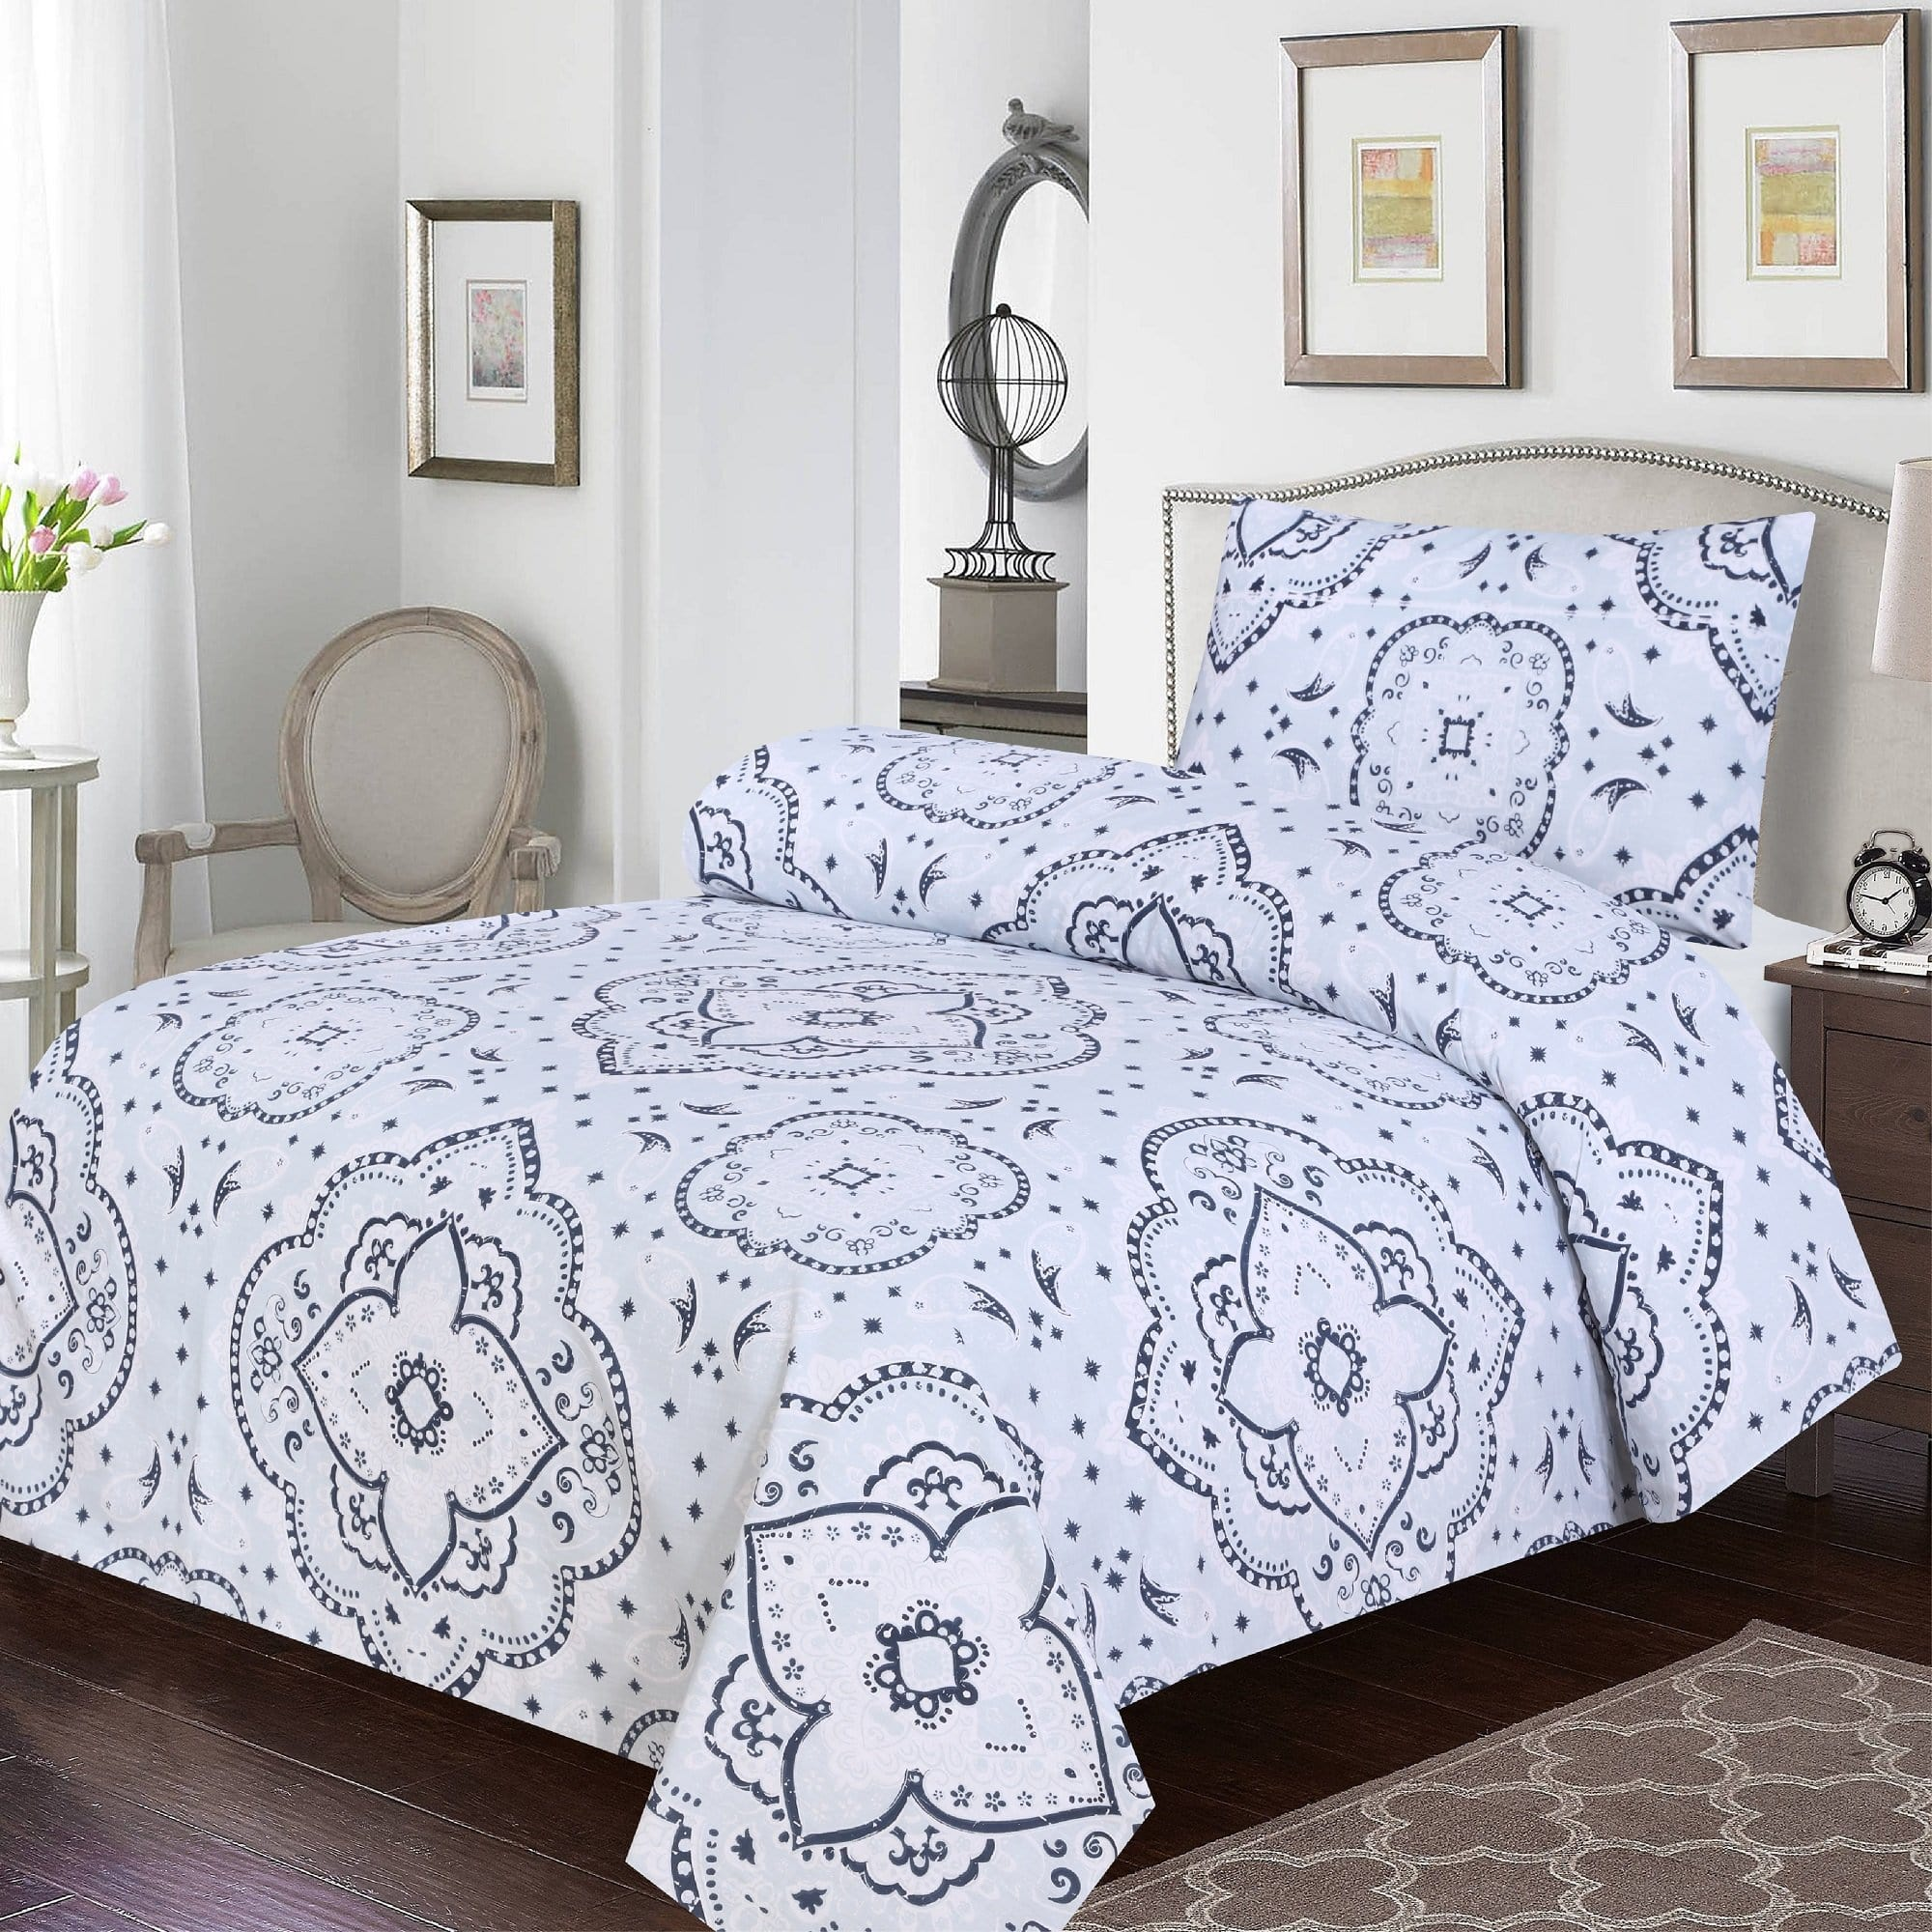 Grace D388-Cotton PC Single Size Bedsheet with 1 Pillow Cover.